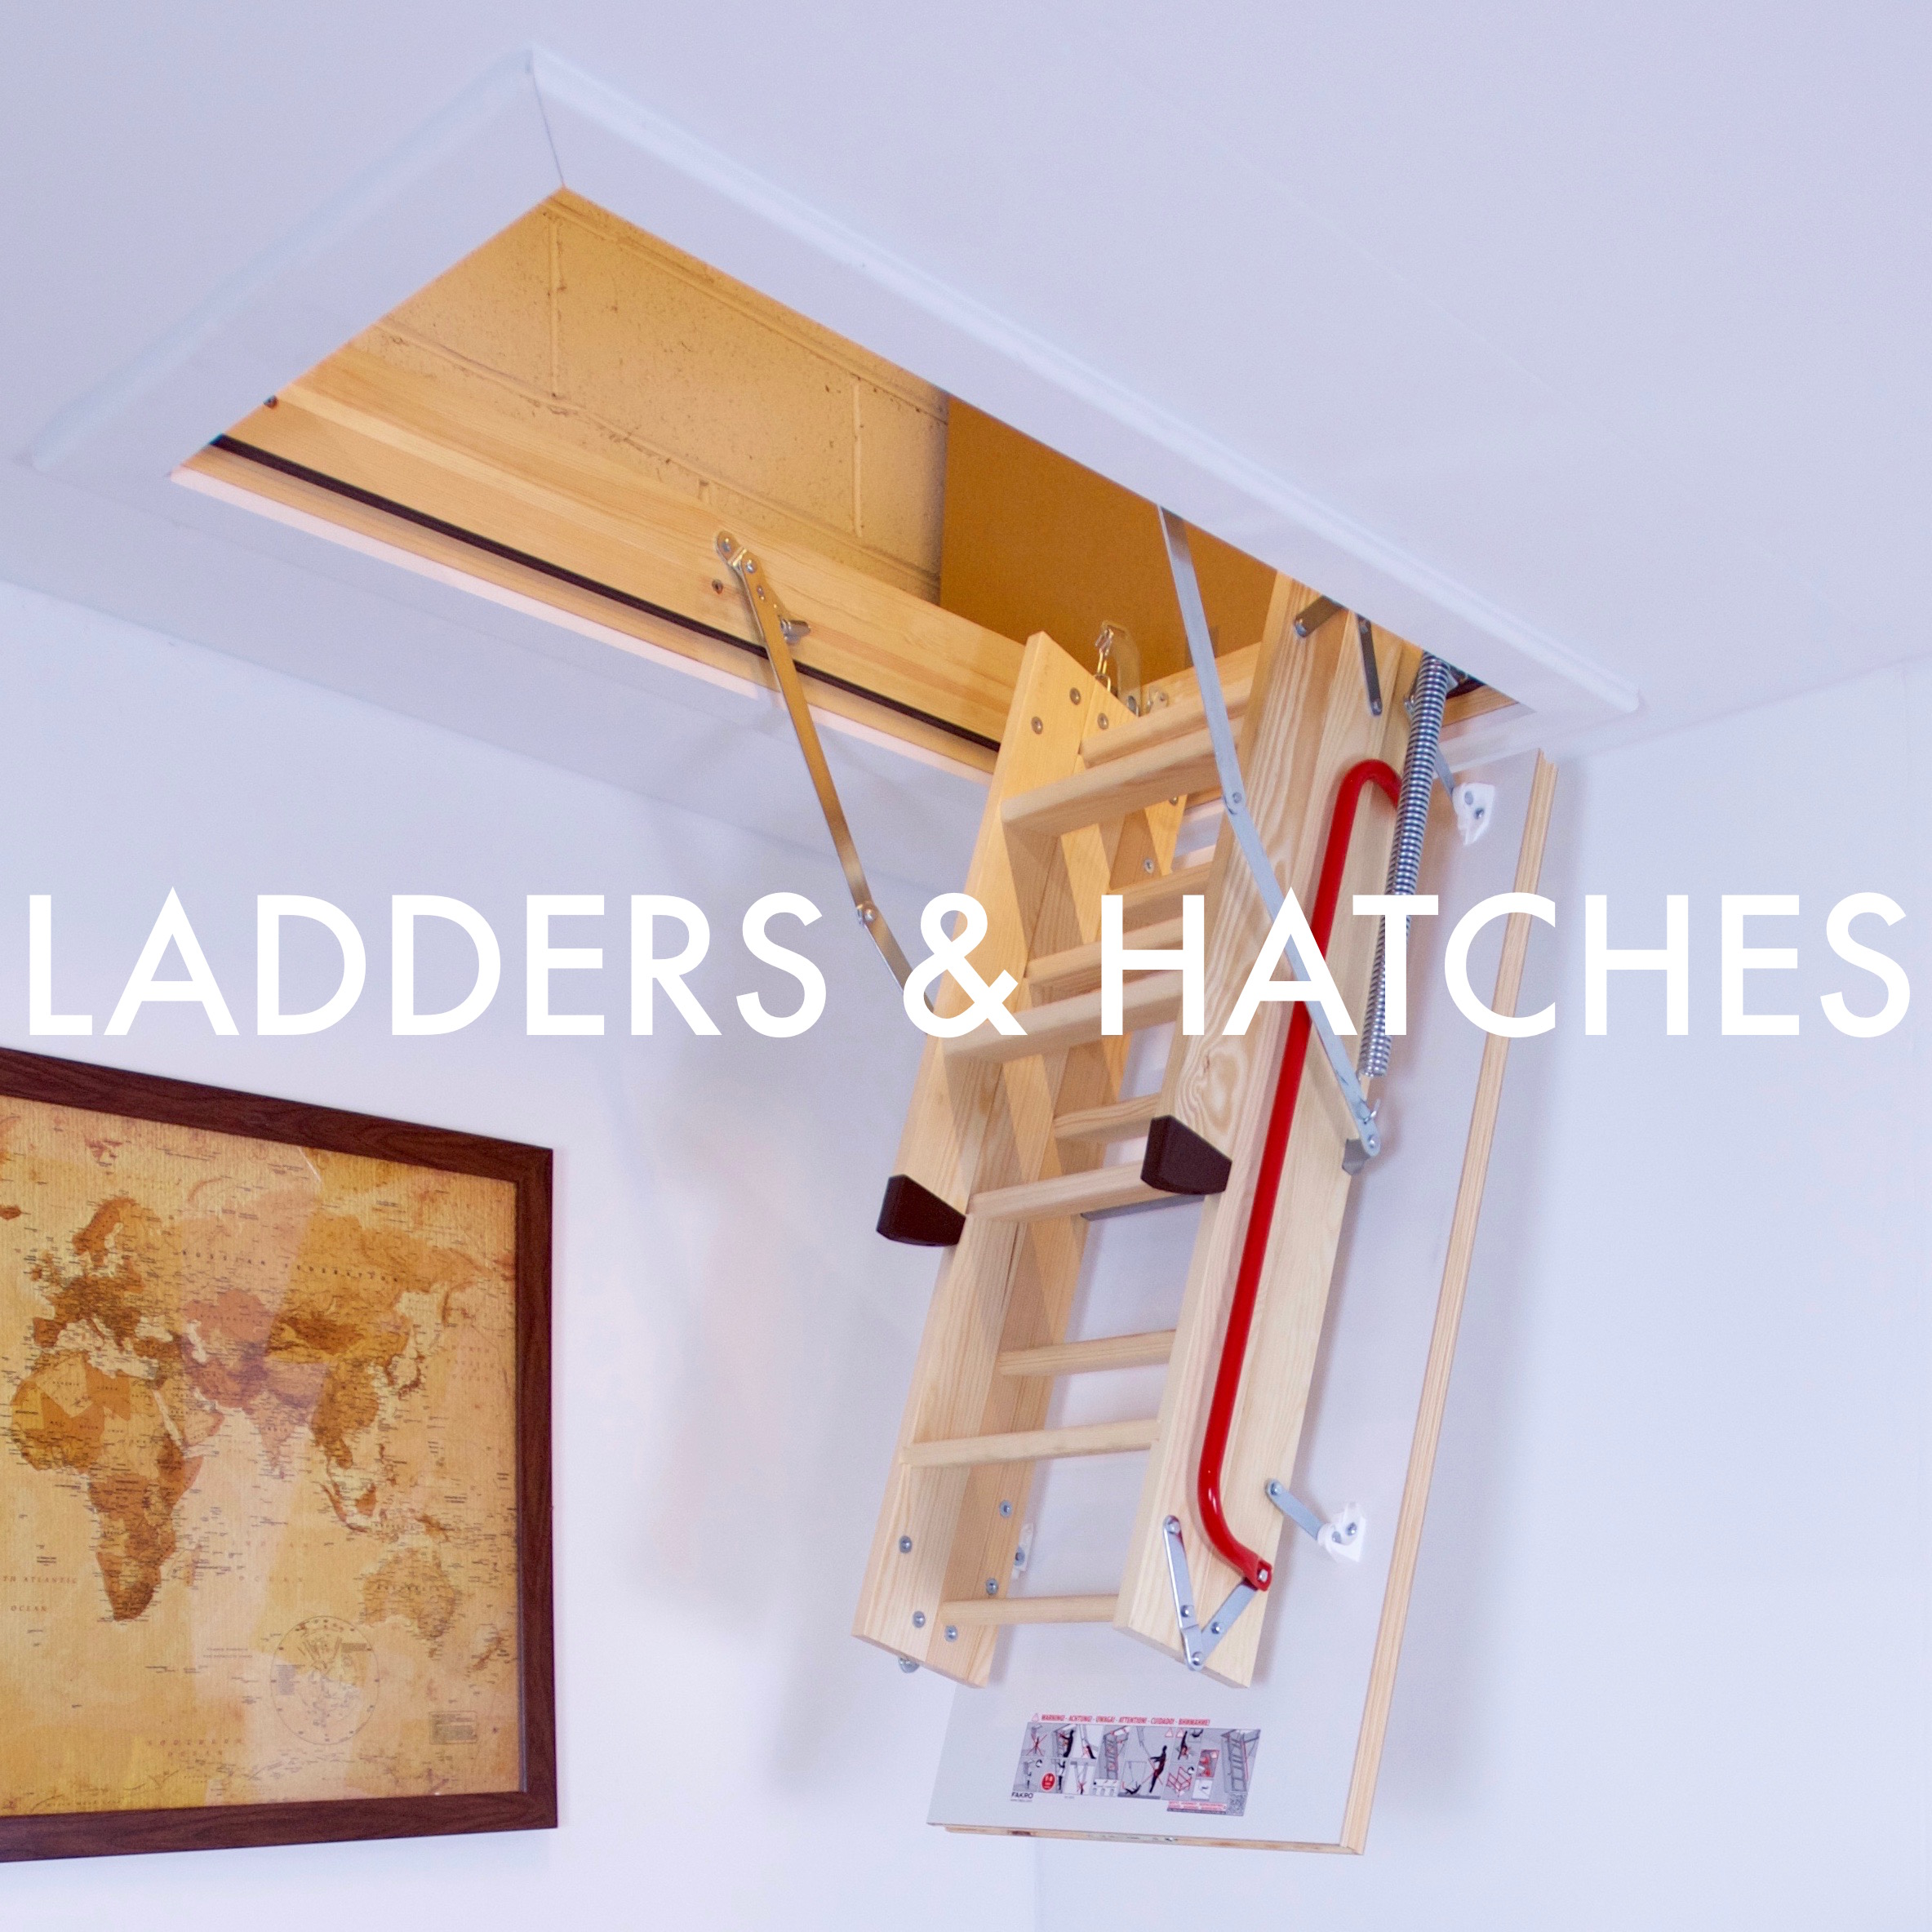 ladders & Hatches